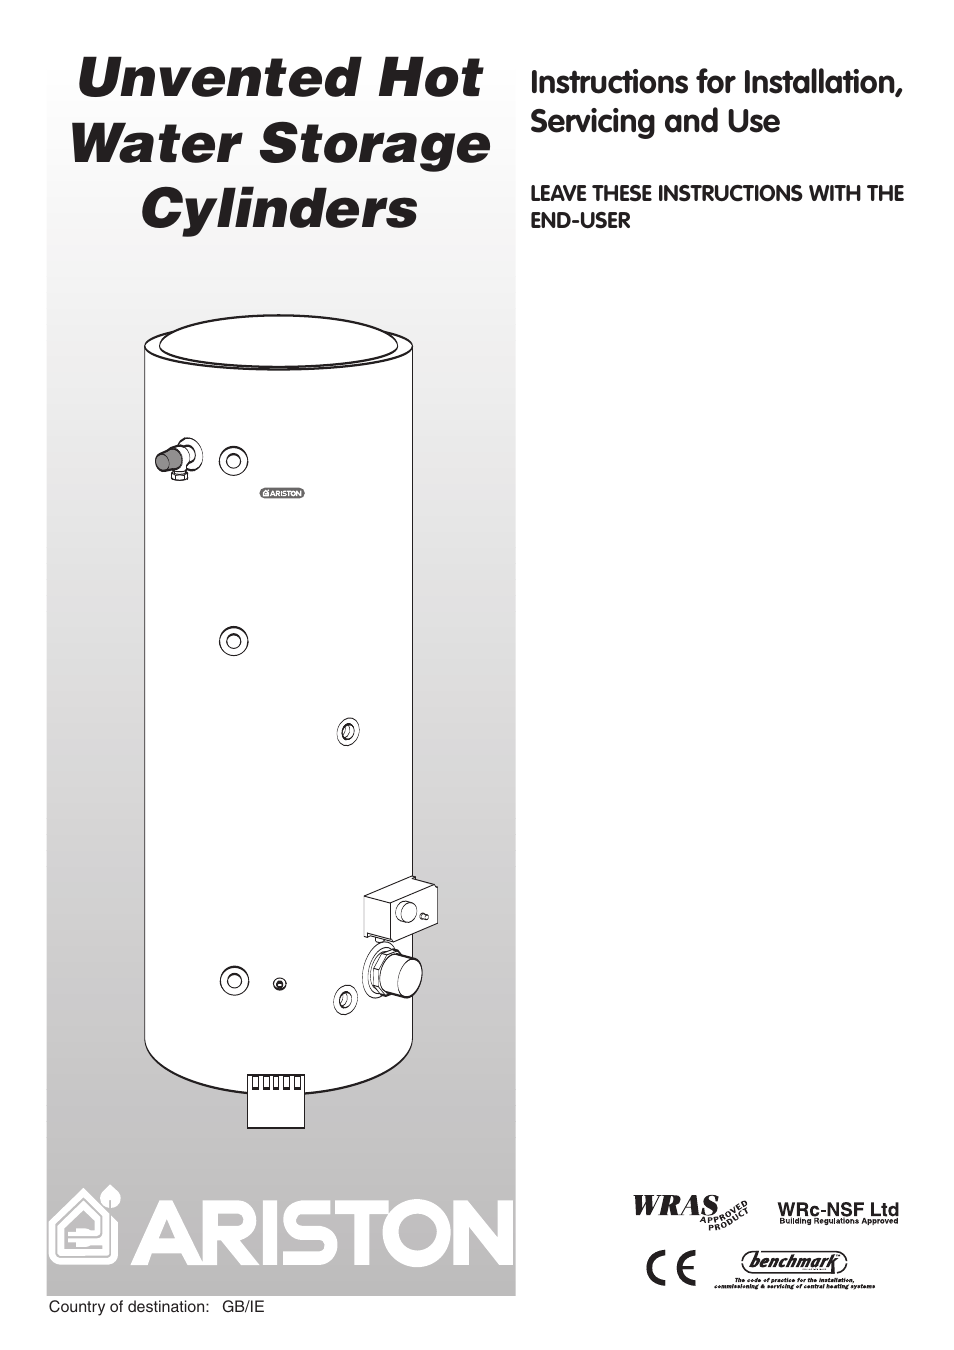 Ariston Unvented Hot Water Storage Cylinders User Manual   24 pages